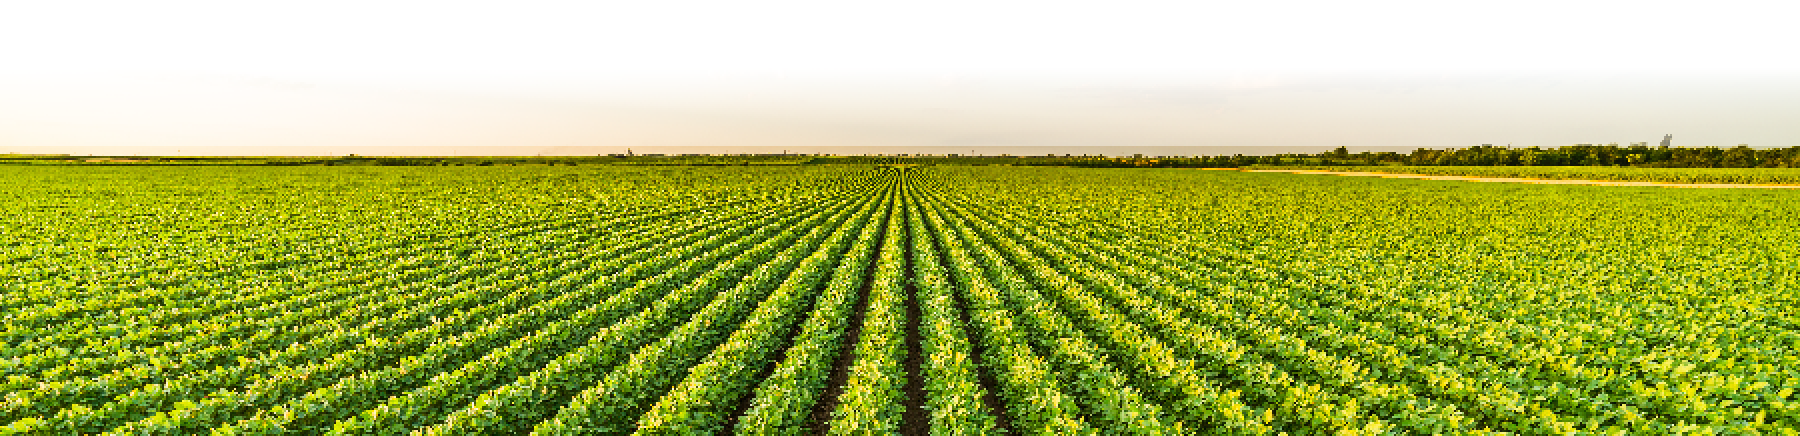 Crop biotechnology continues to provide higher farmer income and significant environmental benefits1